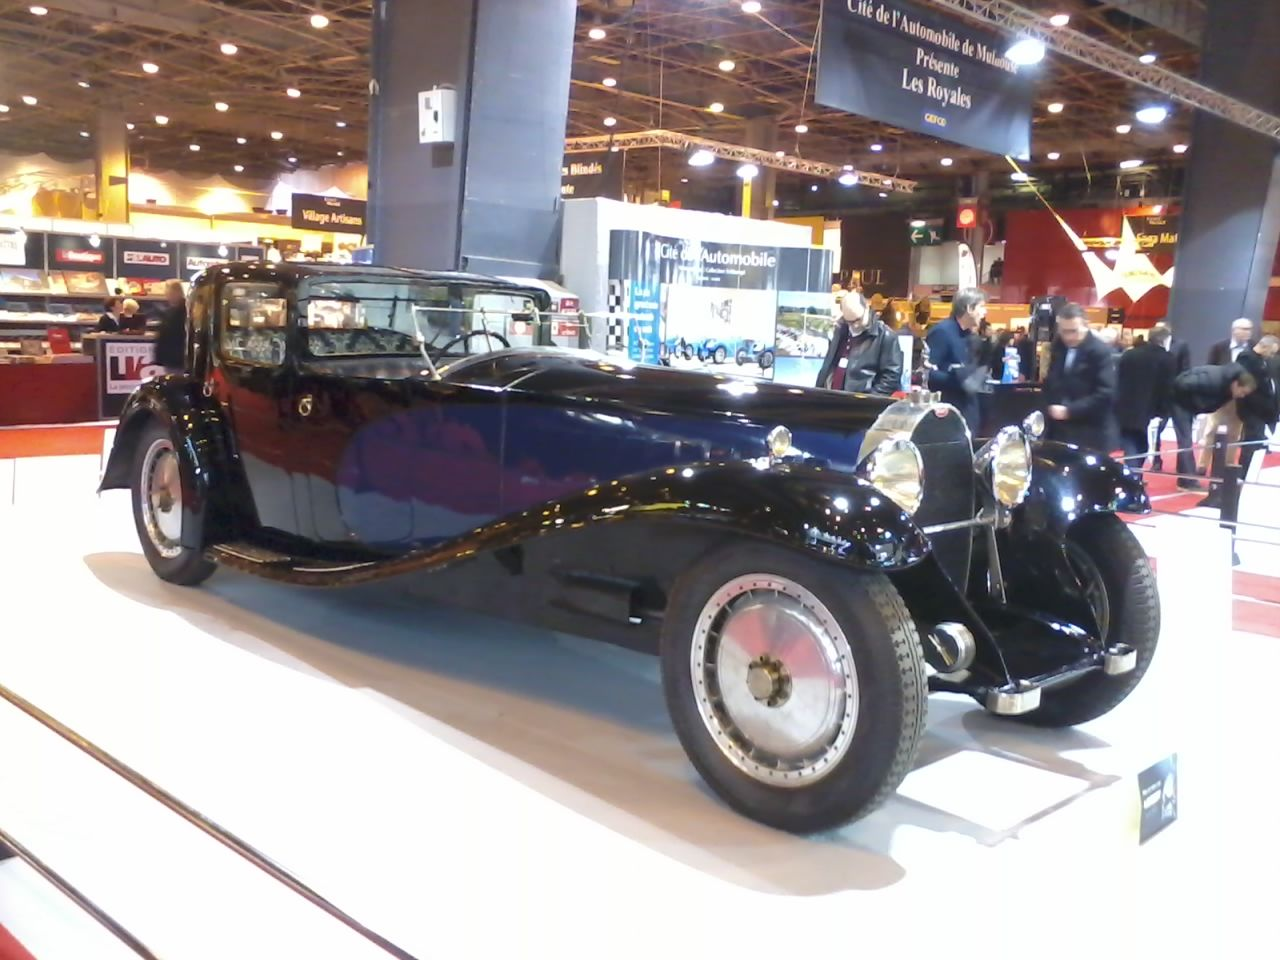 Bugatti Royale, Rétromobile 2015, d'autres  lien: http://photosdevoituresmotos.blogspot.fr/2015/02/blog-post_7.html